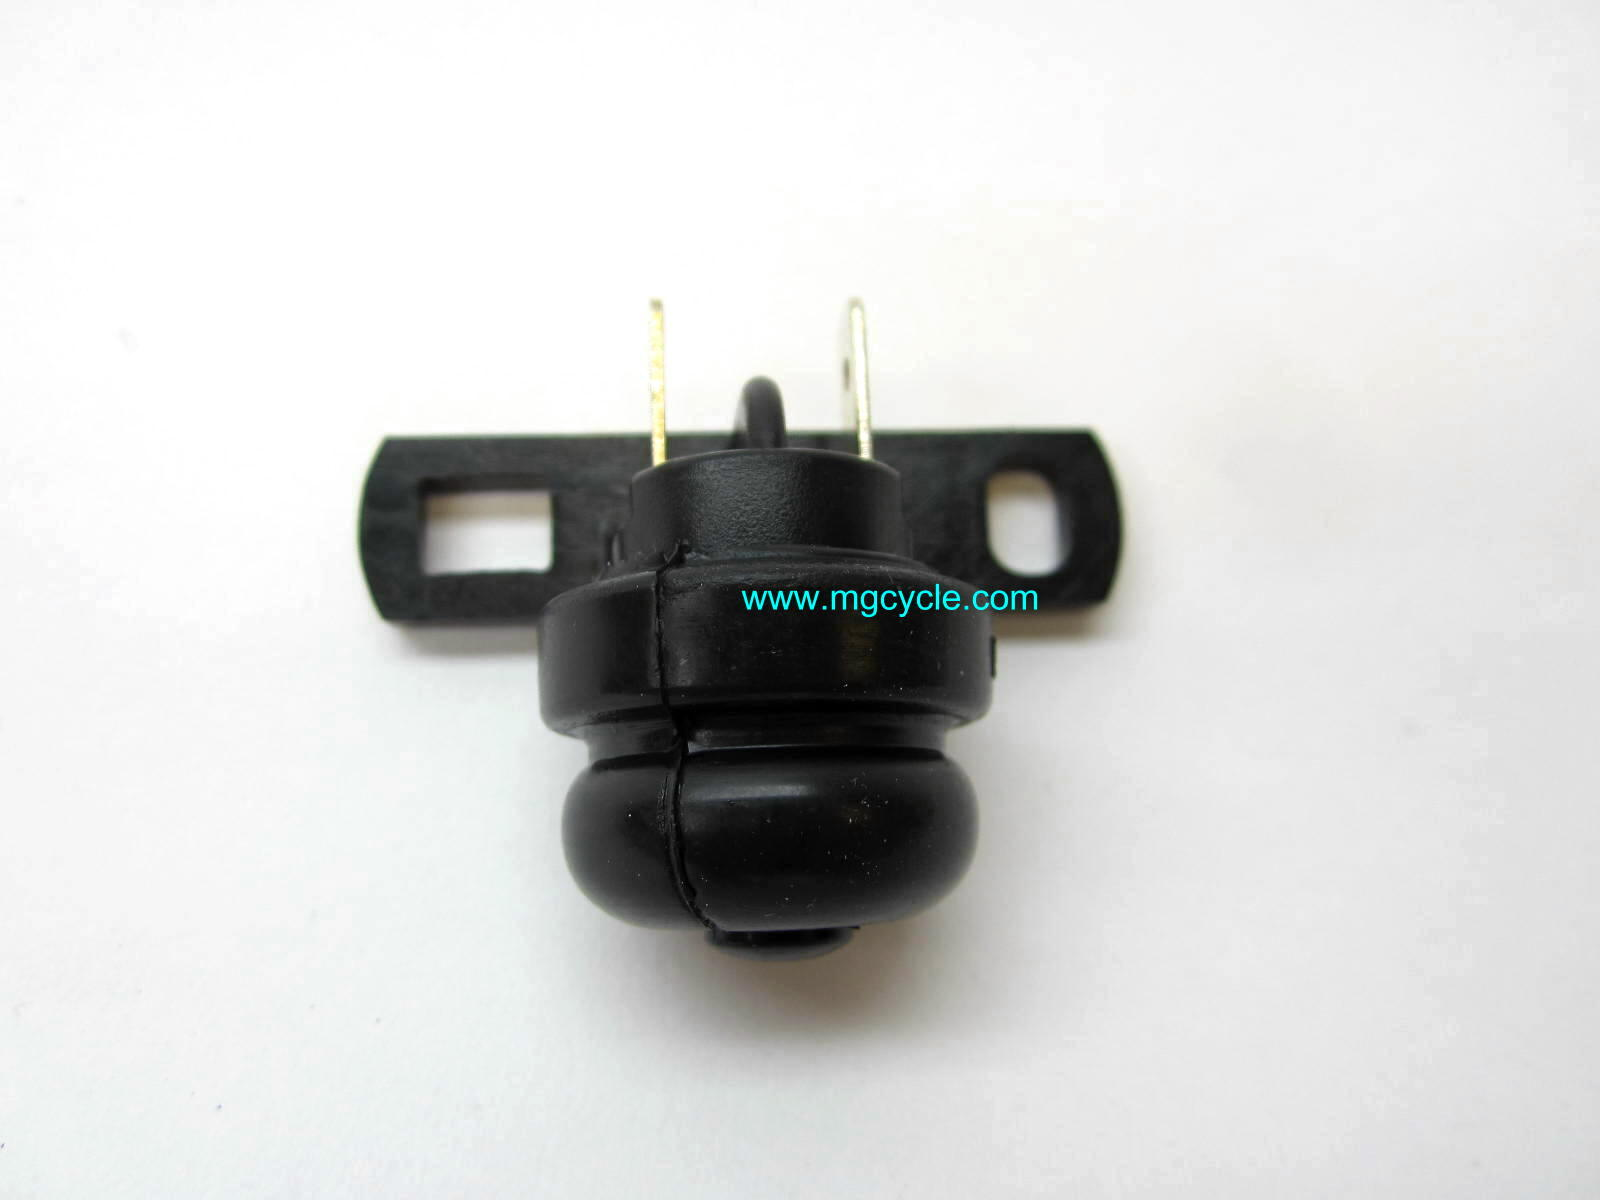 Alternate brake light switch, rear, V700 Ambassador Eldorado